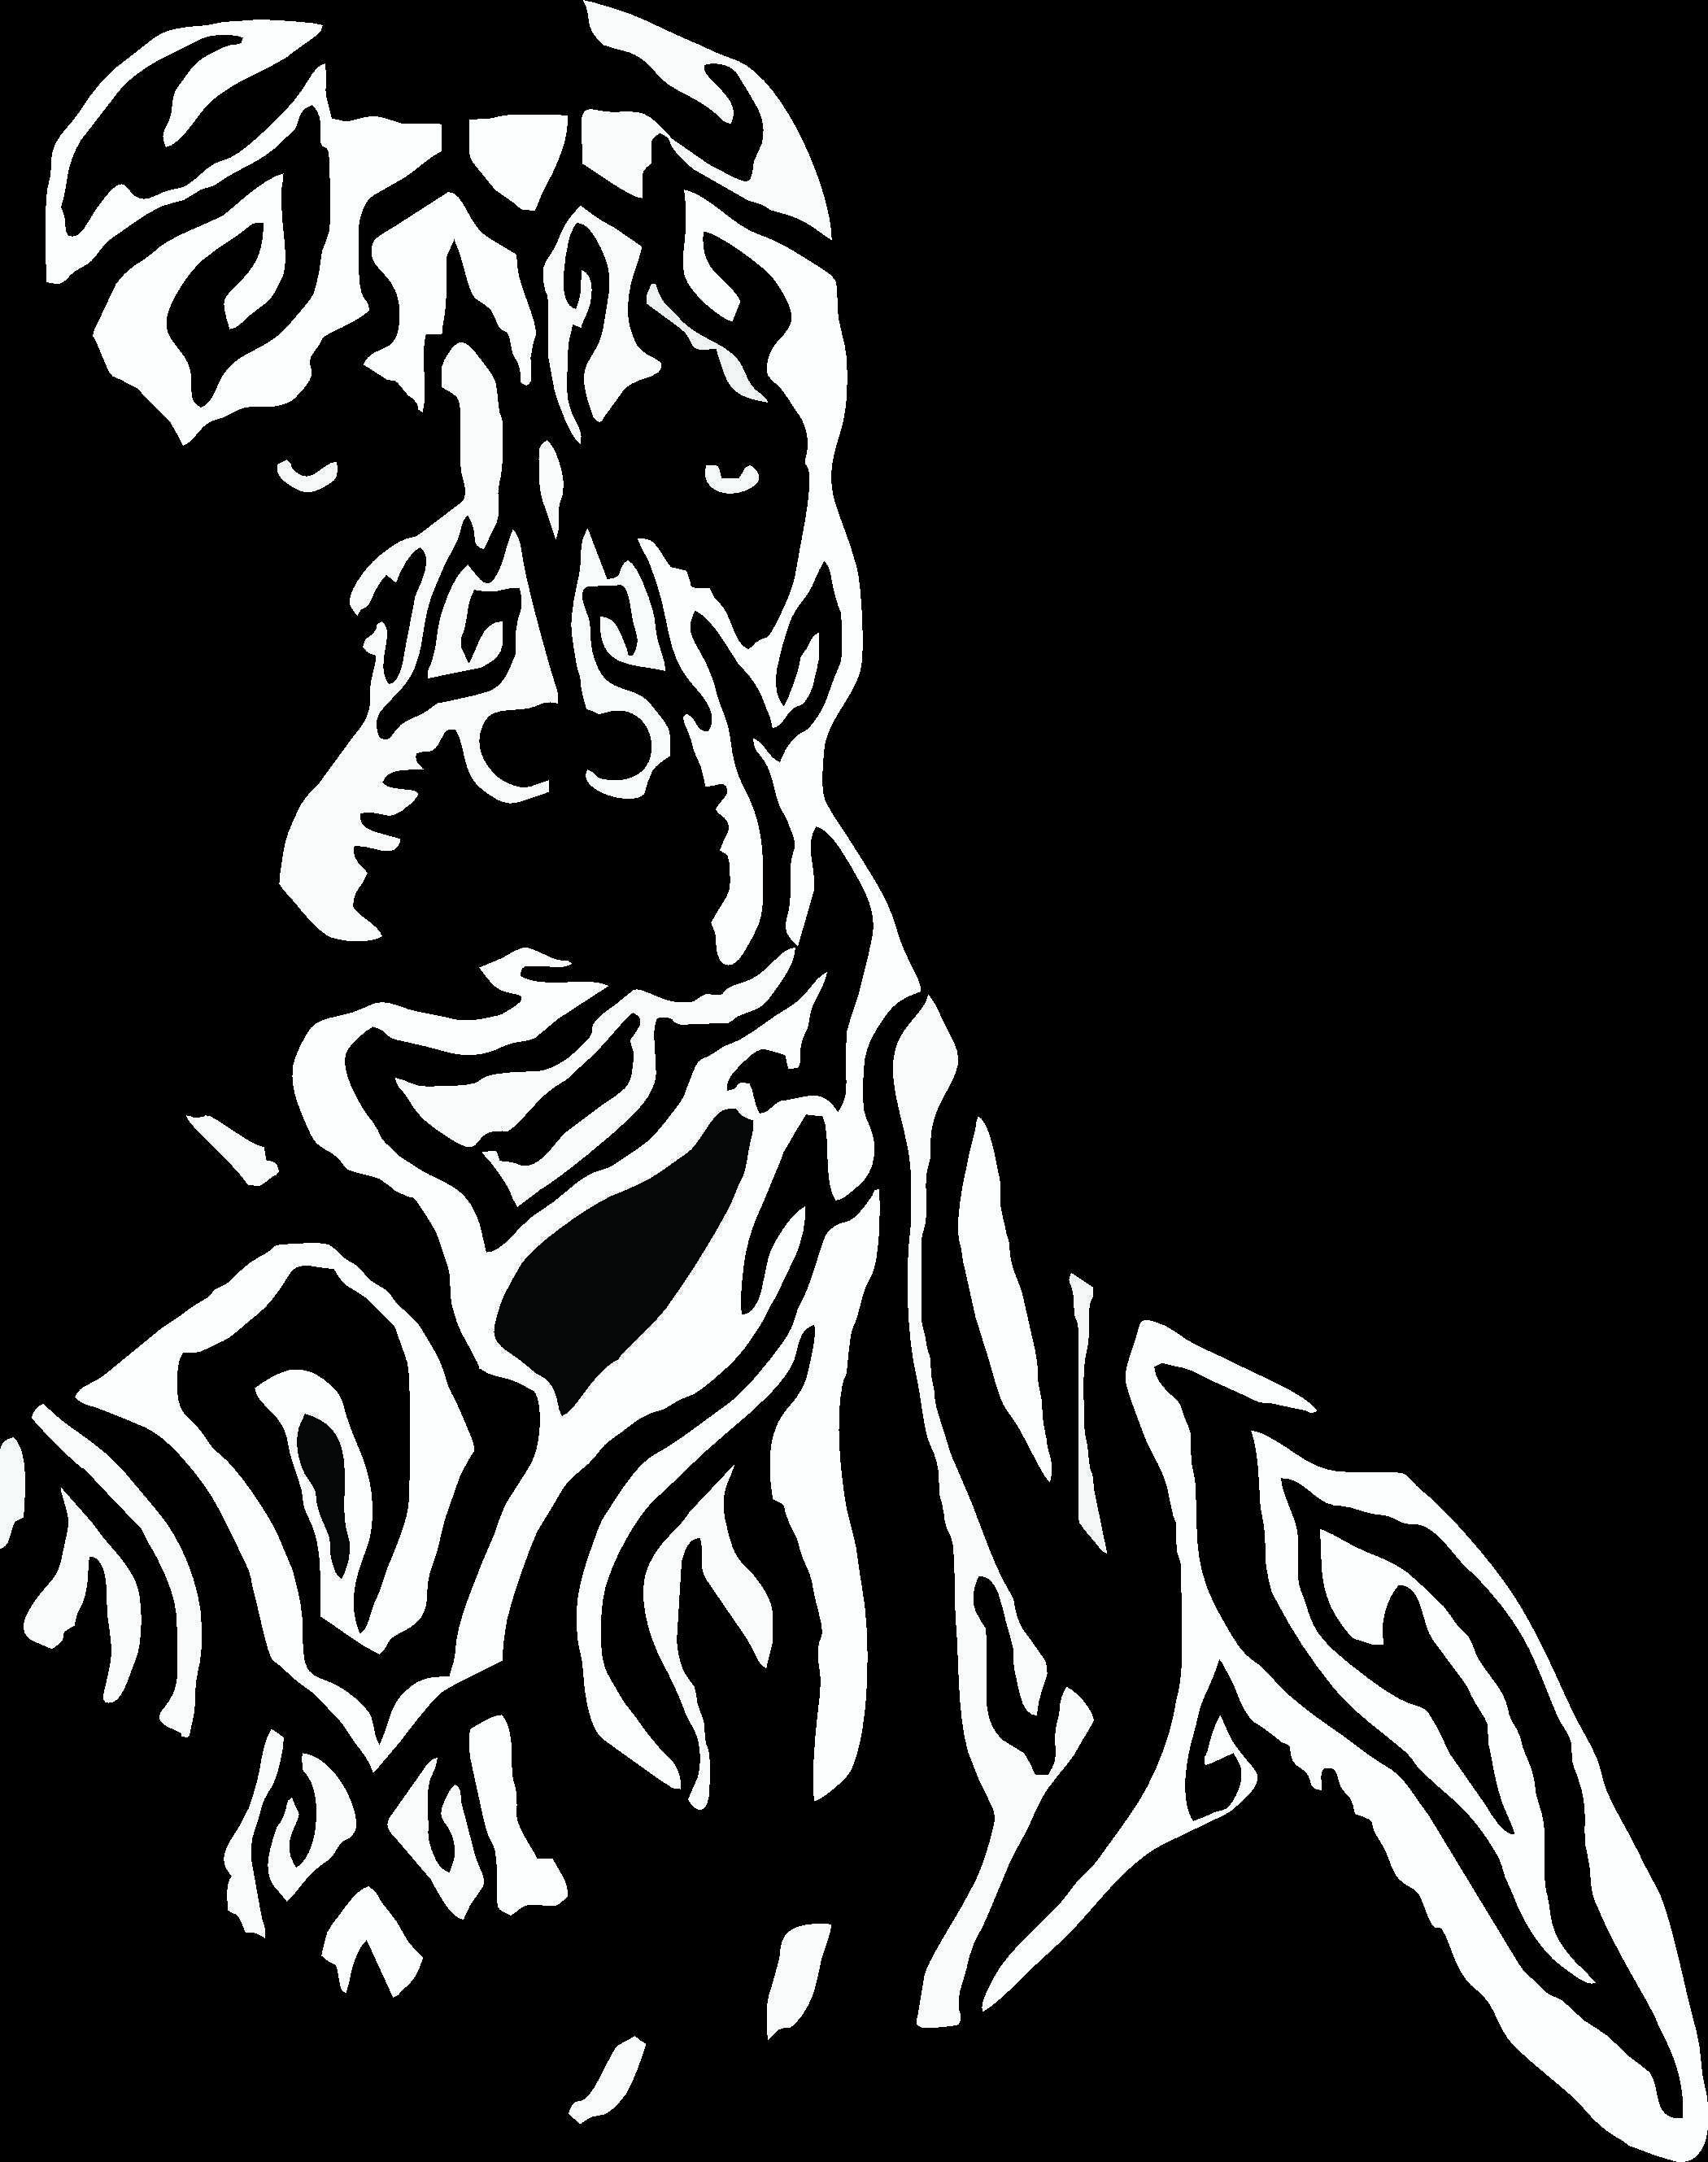 Tribal car sticker design - Tribal Pitbull Design Sticker Decal For Your Car Boat Wall Atv Or